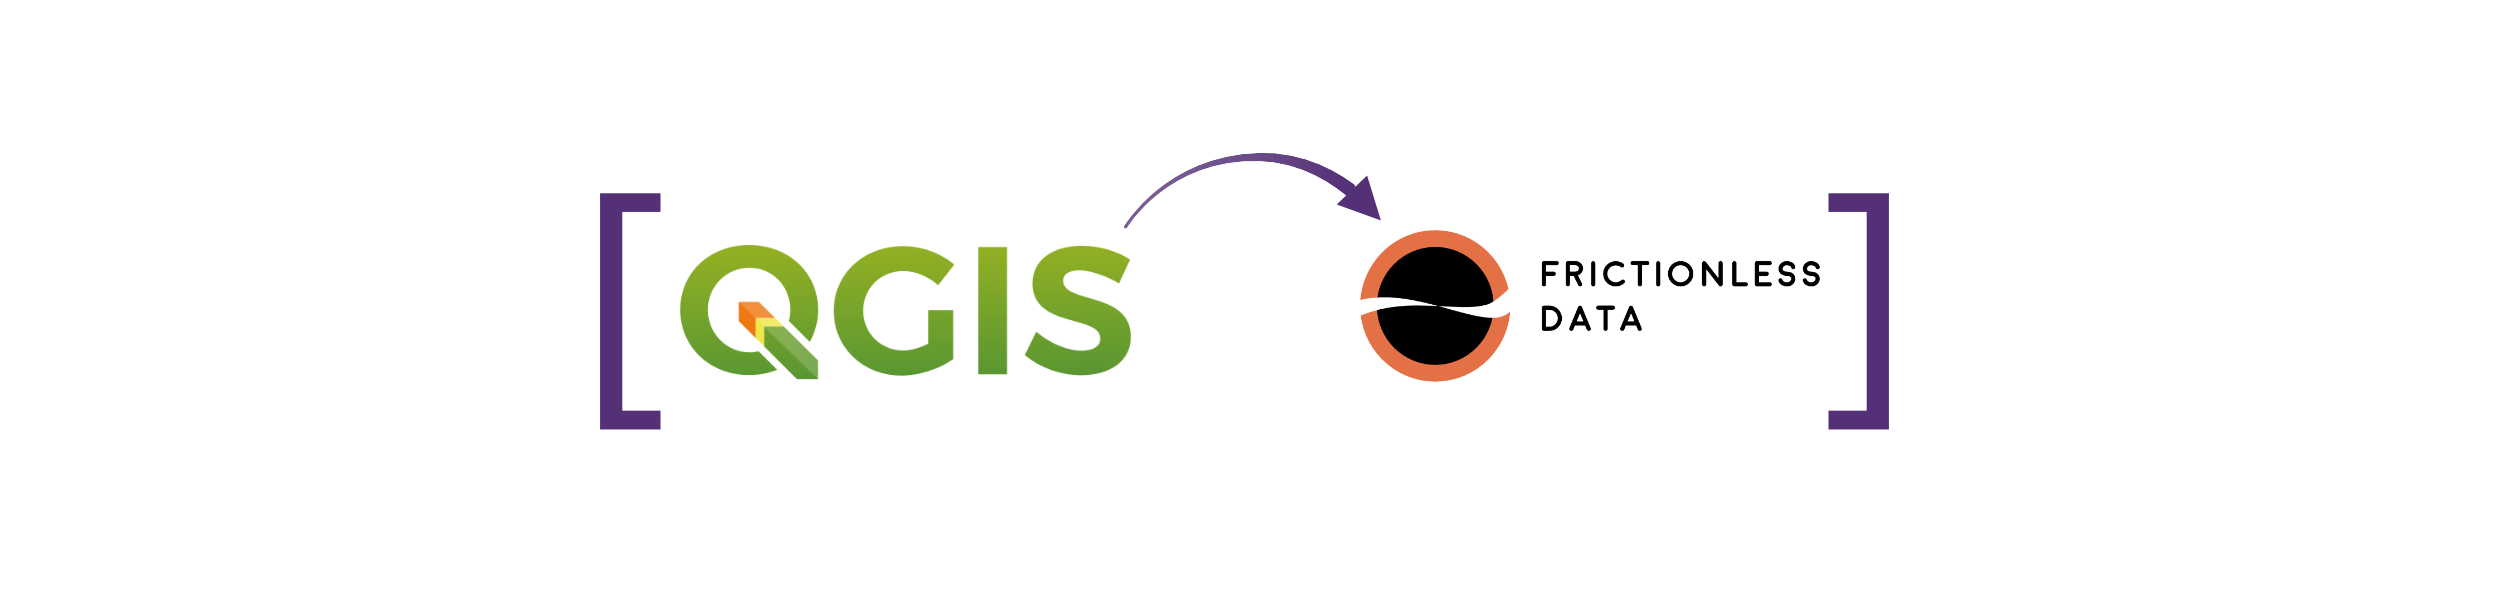 QGIS logo with arrow pointing towards Frictionless Data logo in brackets.